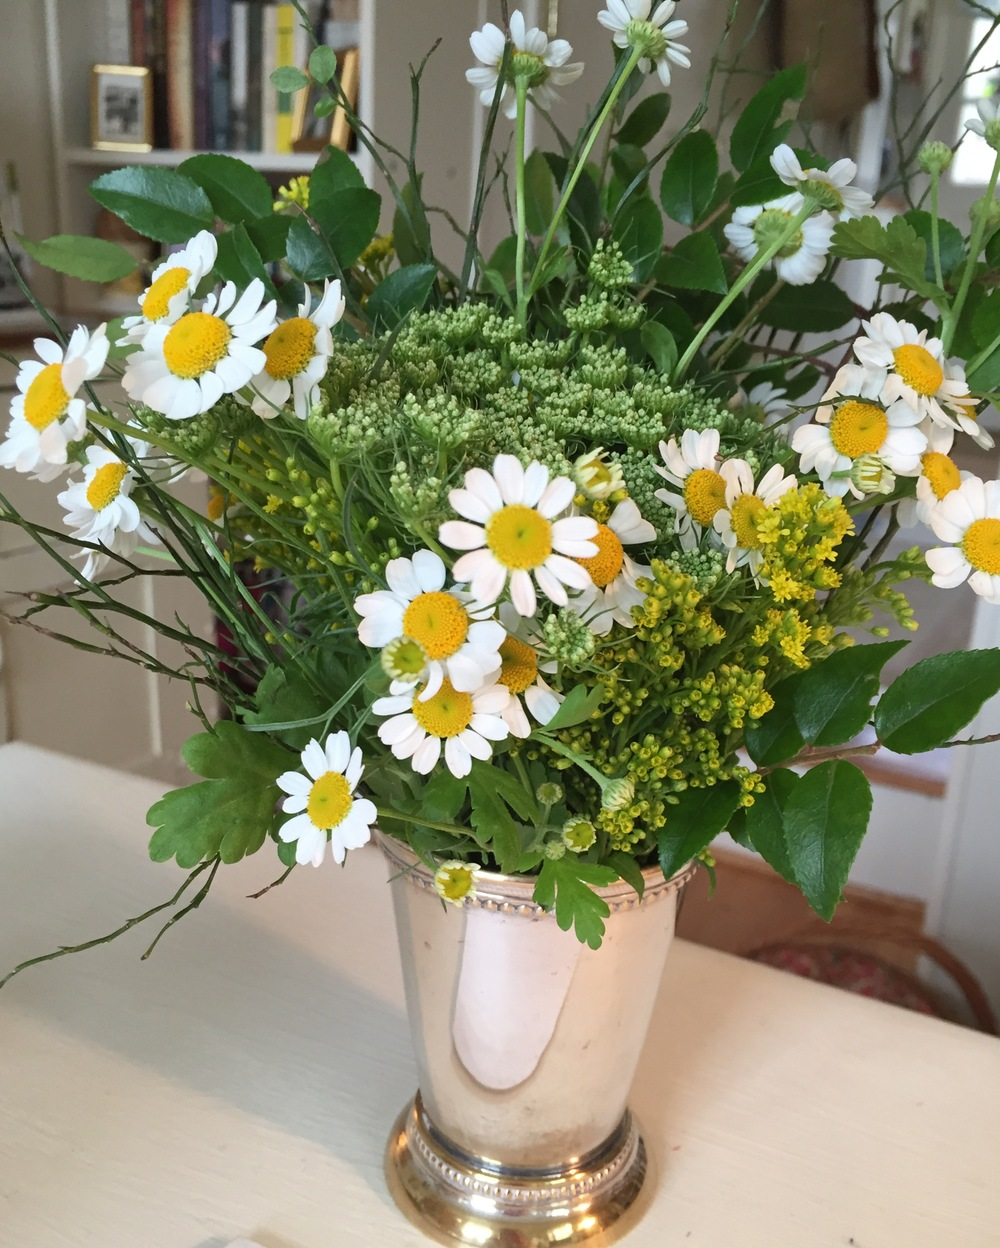 There seems to be flowers for other holidays, so I purchased a small bouquet for my desk.What is recommended for Leap Year?